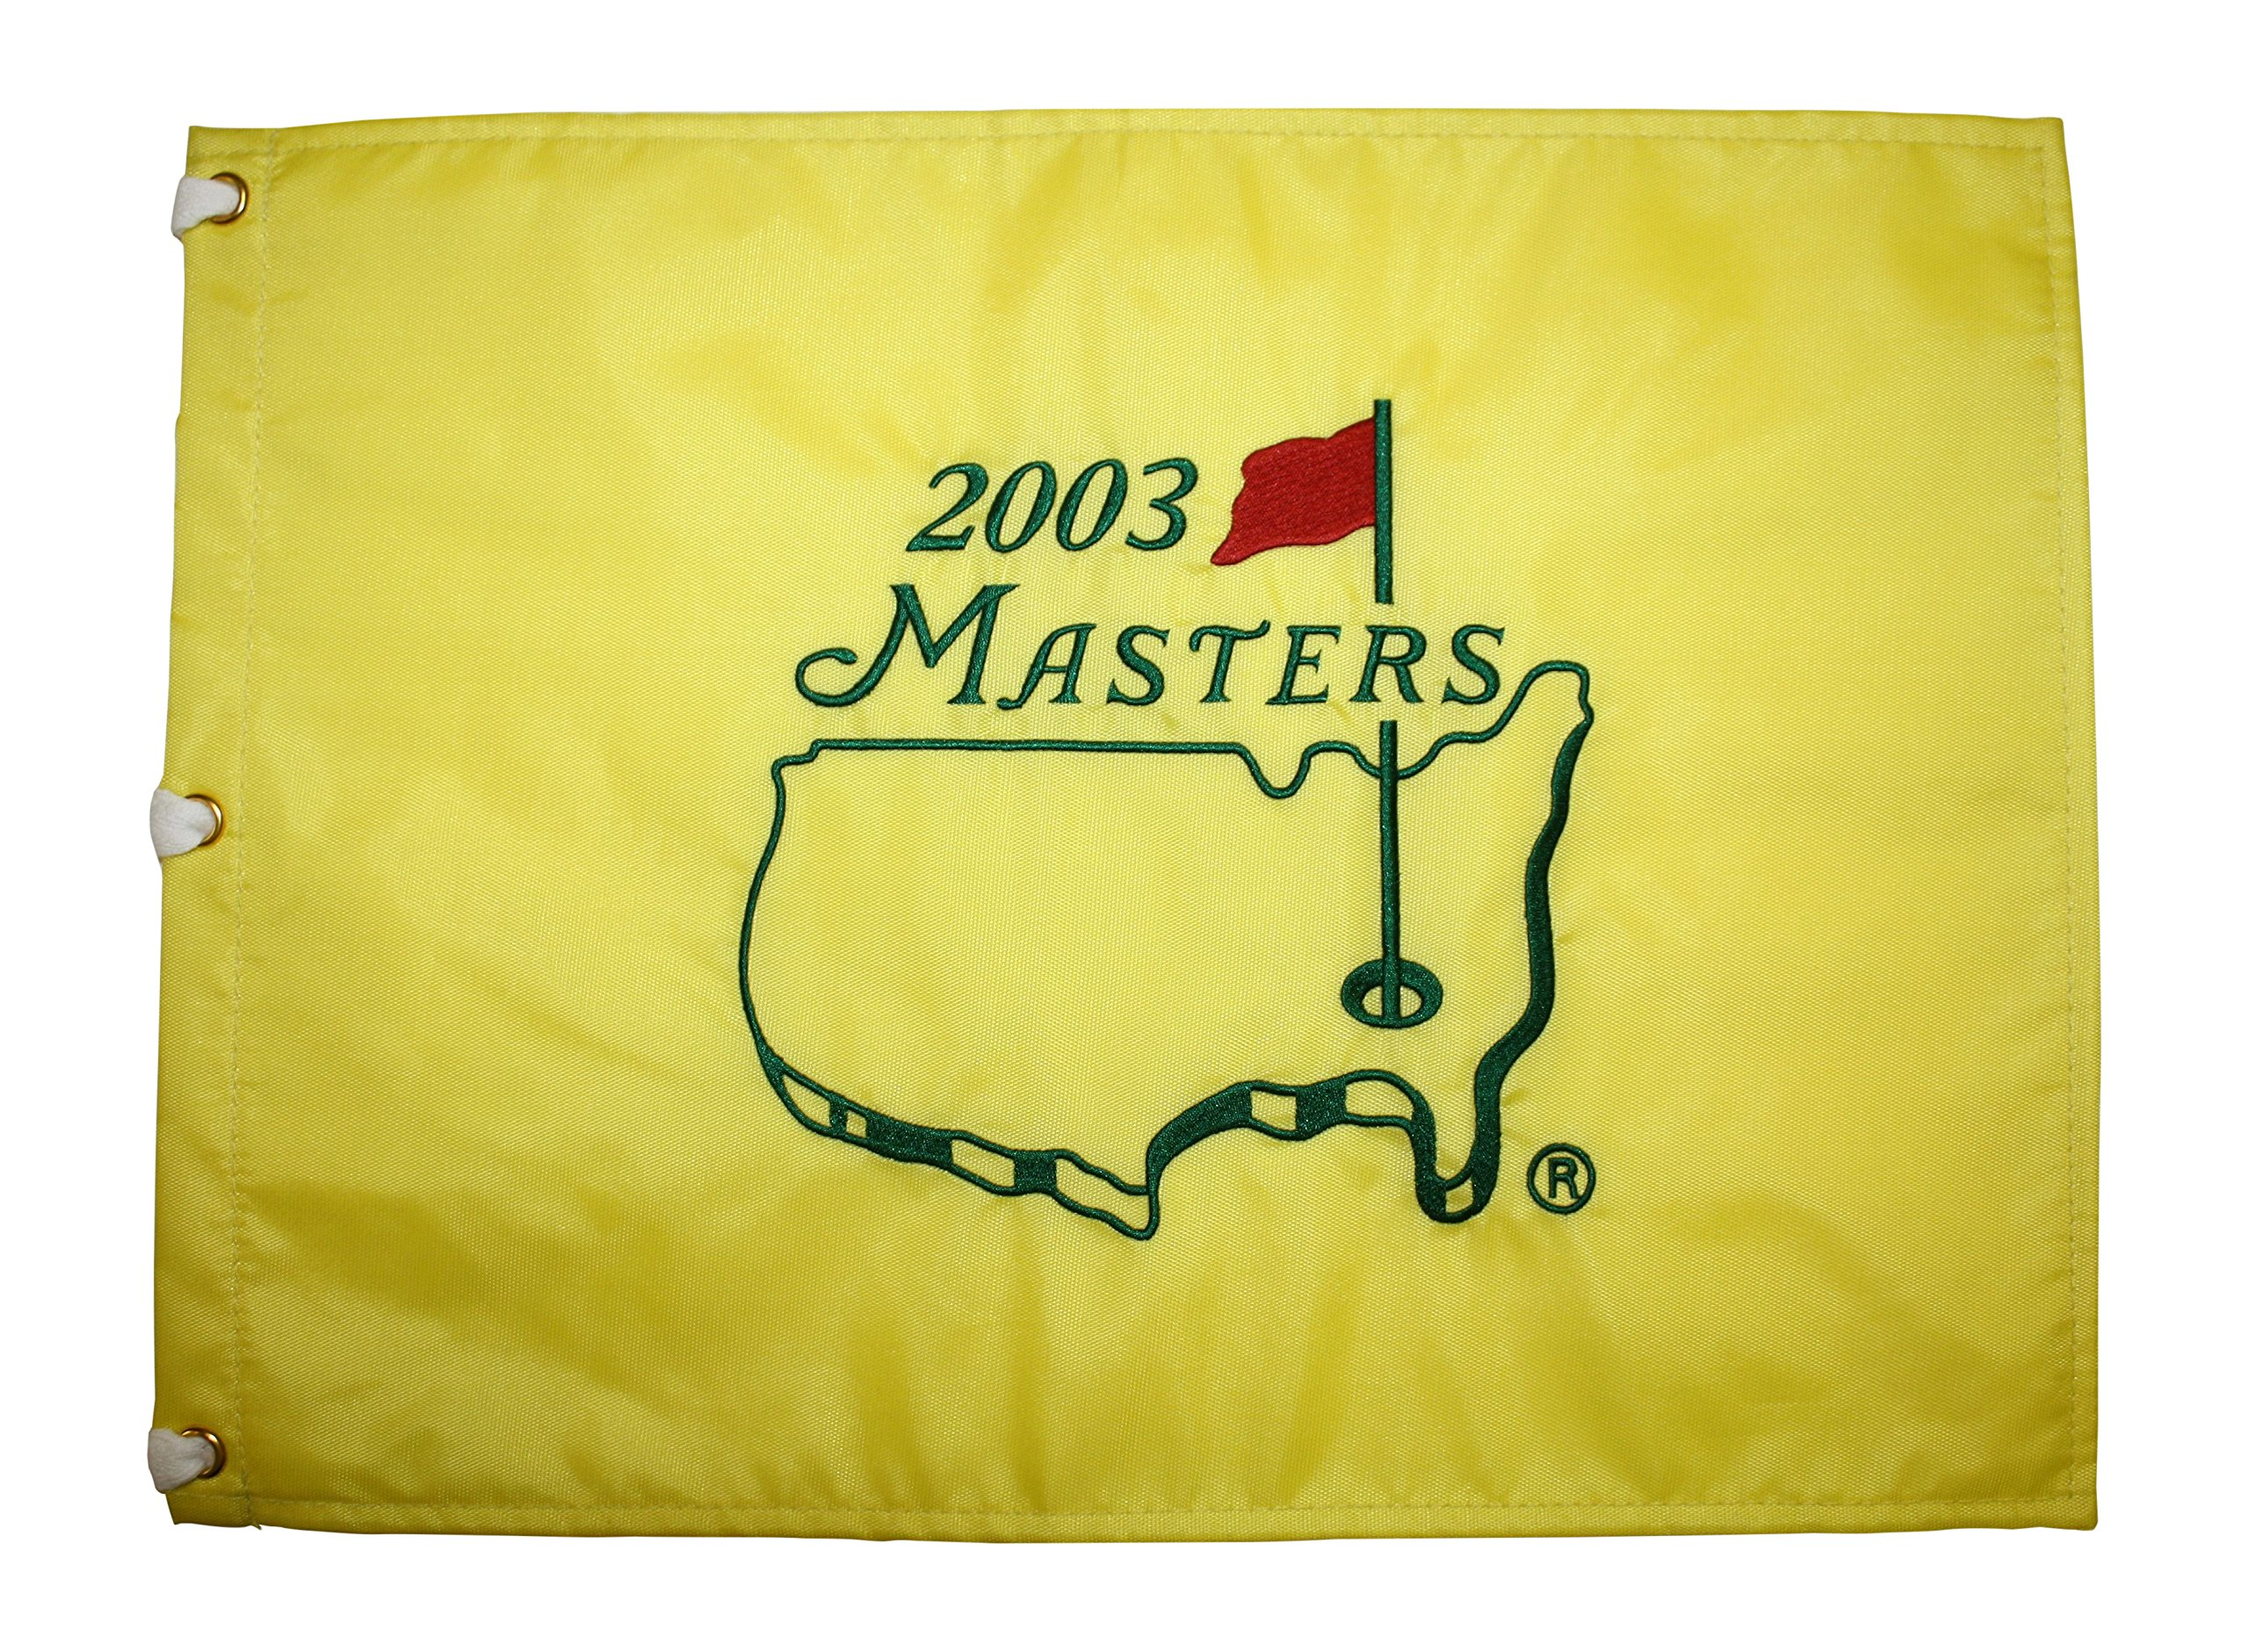 Augusta National 2003 Masters Pin Flag